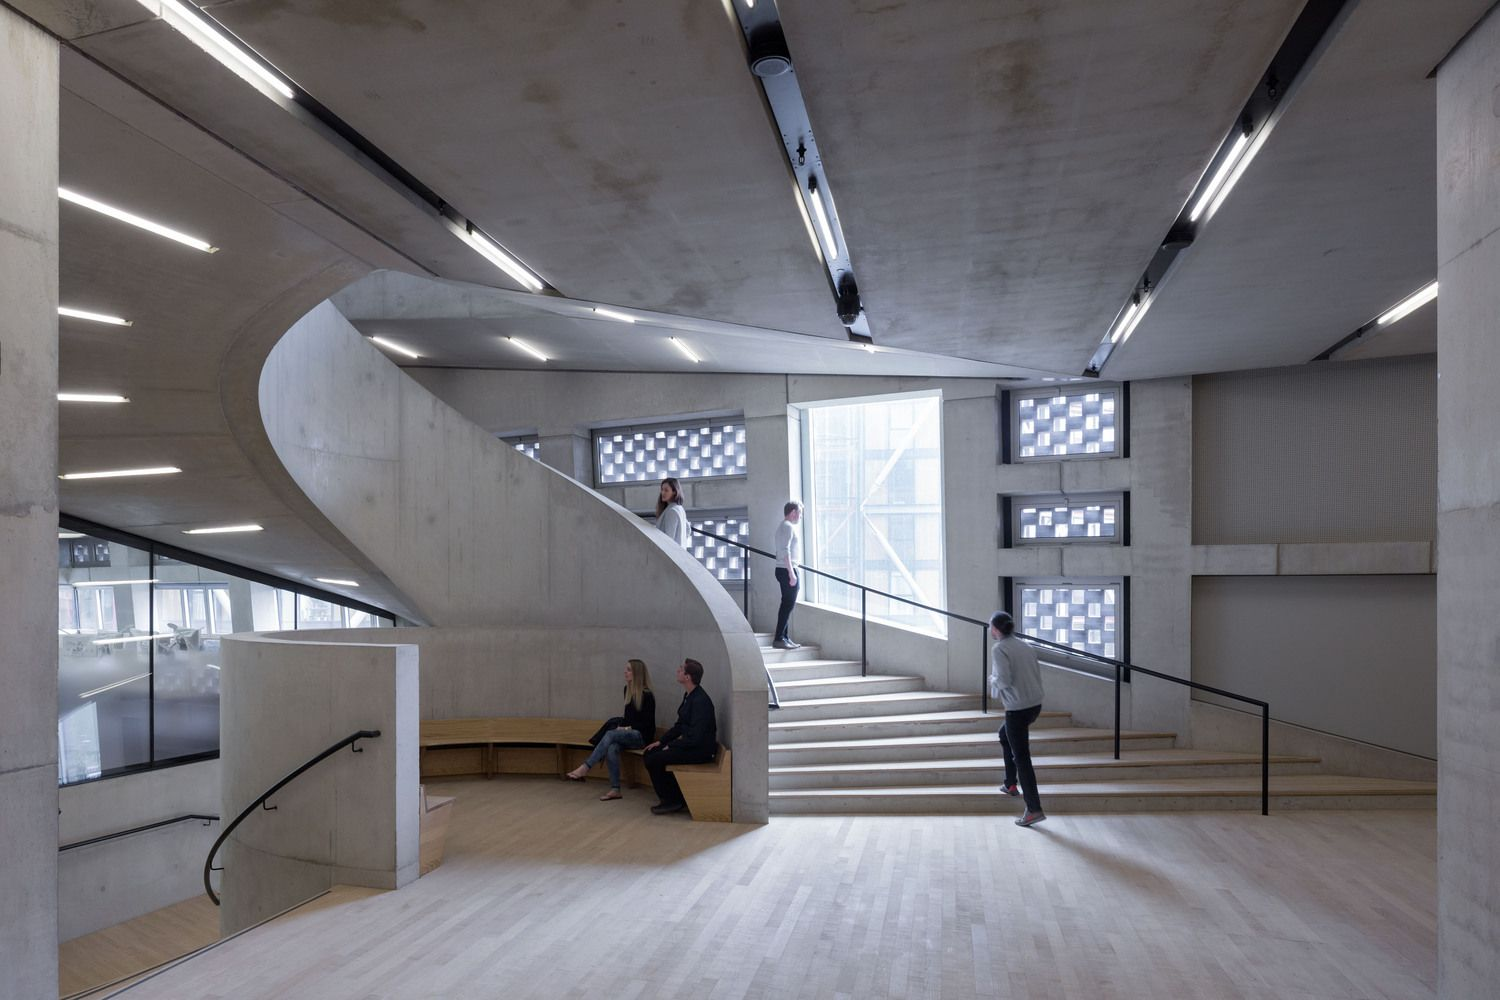 Gallery Of Tate Modern Switch House Herzog De Meuron 2 With